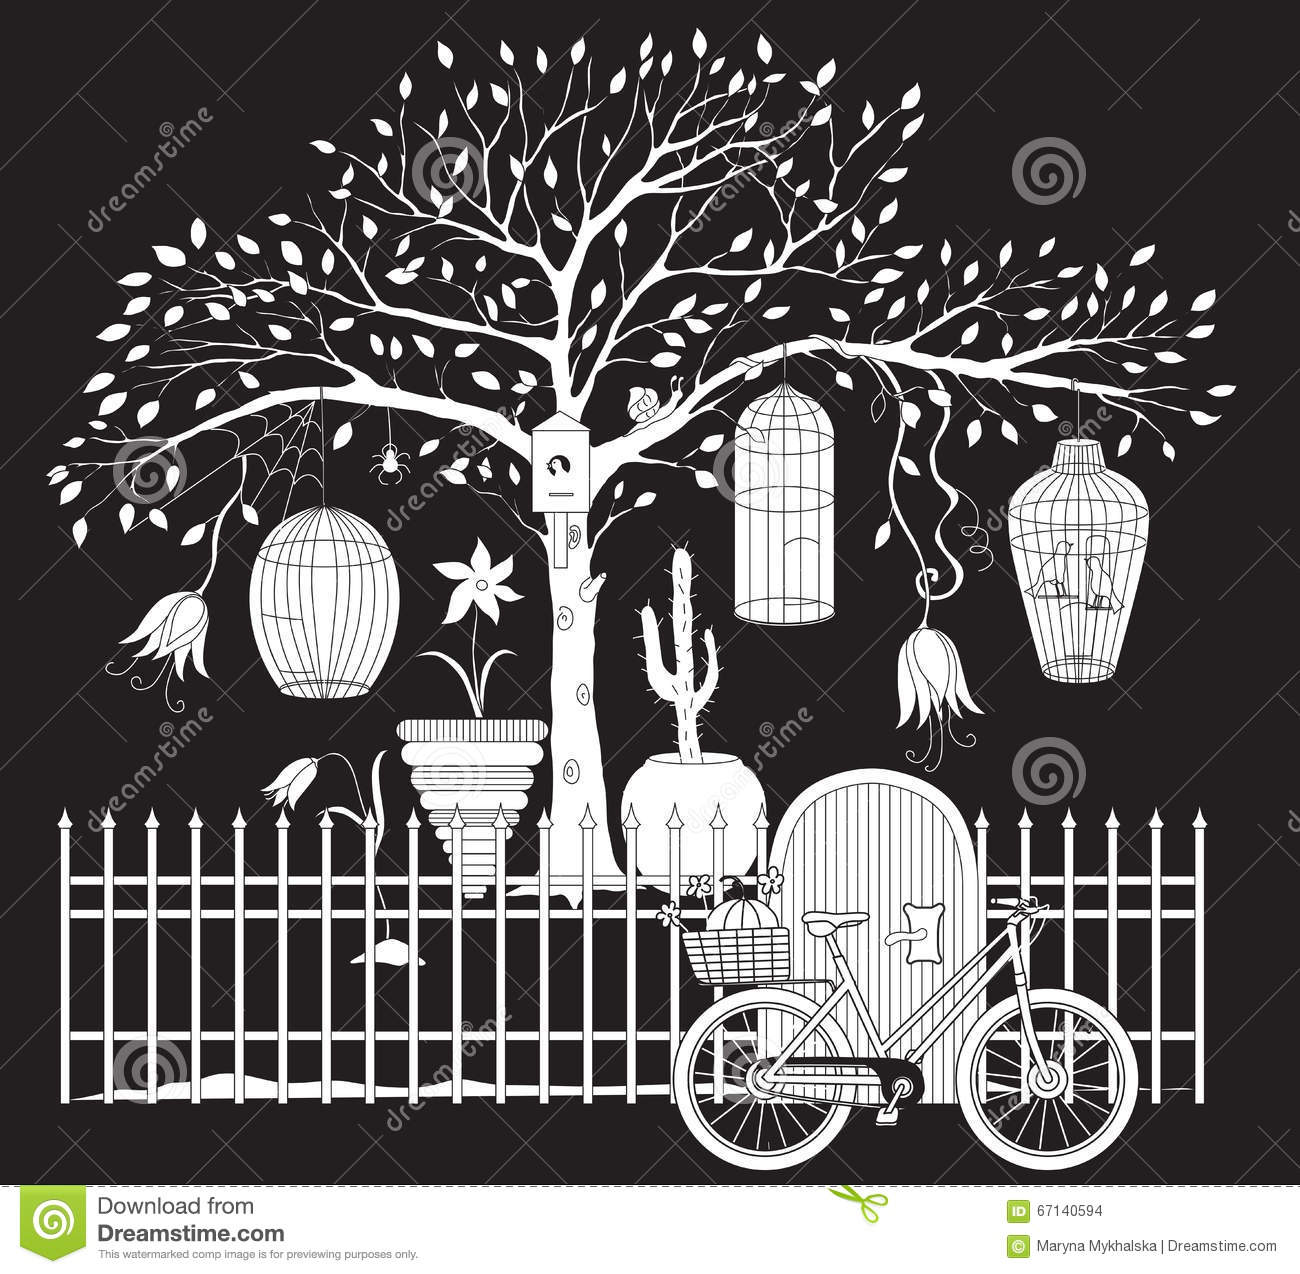 coloring book adult older children coloring page d decorative vintage flowers tree cages outline hand drawn 67140594 additionally 377 best images about coloring pages on pinterest coloring pages on vintage baby coloring pages moreover 650 best images about coloring pages for kids years 3 6 on on vintage baby coloring pages as well as vintage with baby chicks adult coloring pages pinterest on vintage baby coloring pages further 650 best images about coloring pages for kids years 3 6 on on vintage baby coloring pages